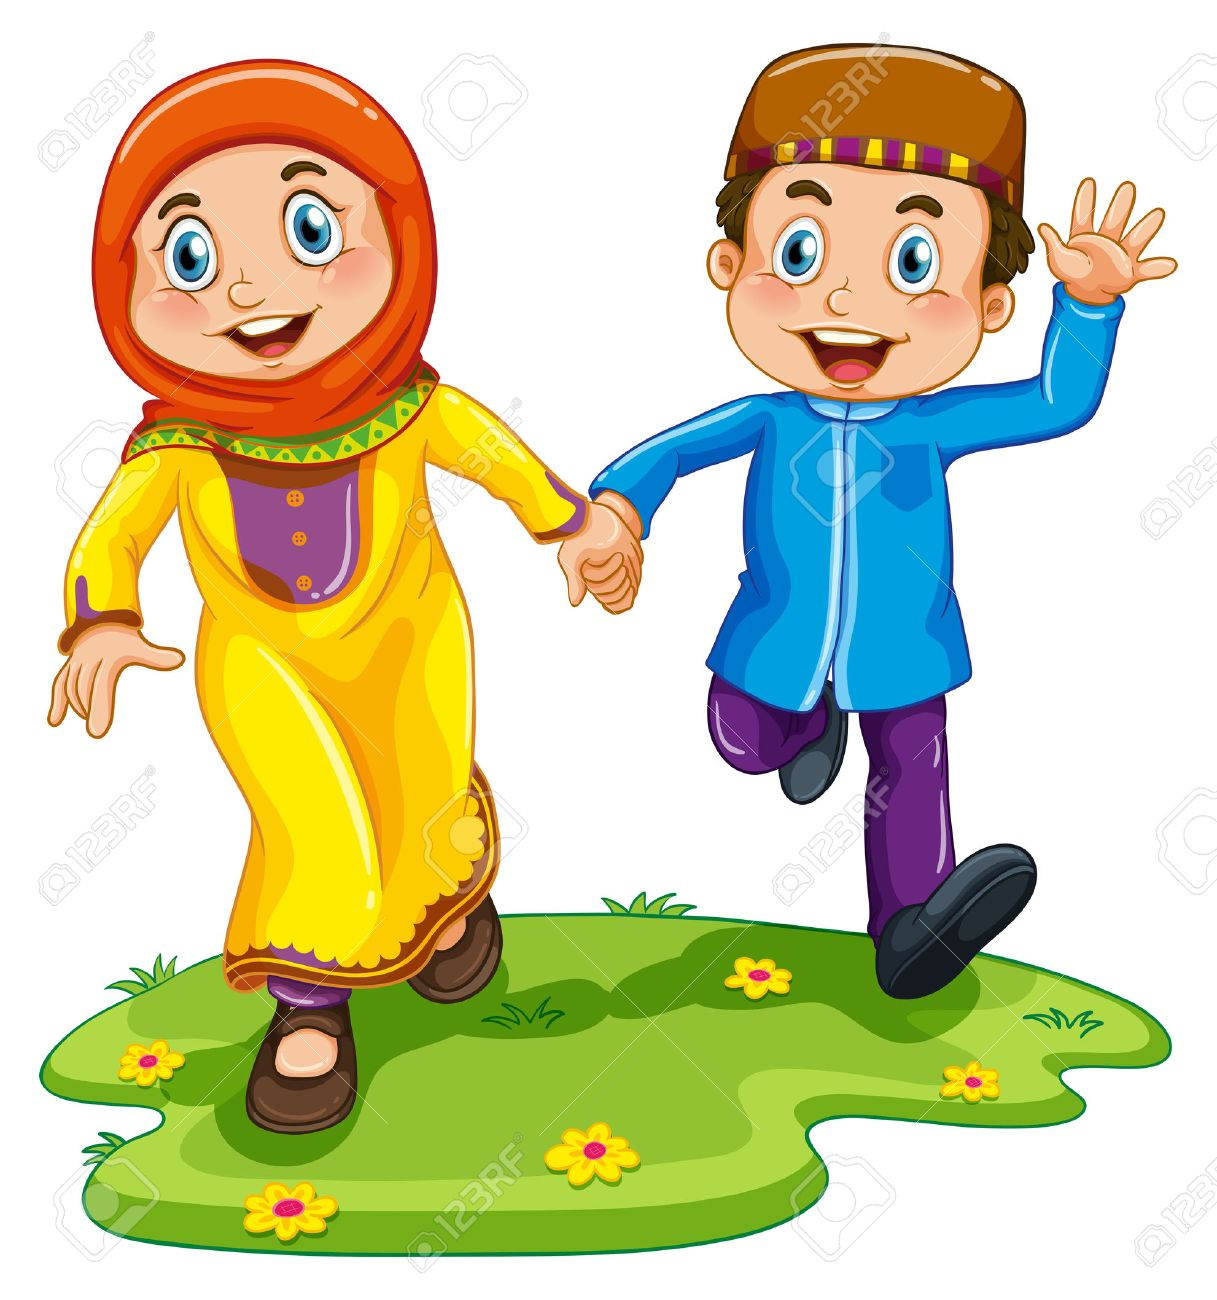 muslim boy and girl holding hands royalty free cliparts vectors rh 123rf com Sample Boy and Girl Clip Art Holding Hands Black and White Clip Art Boy and Girl Holding Hands